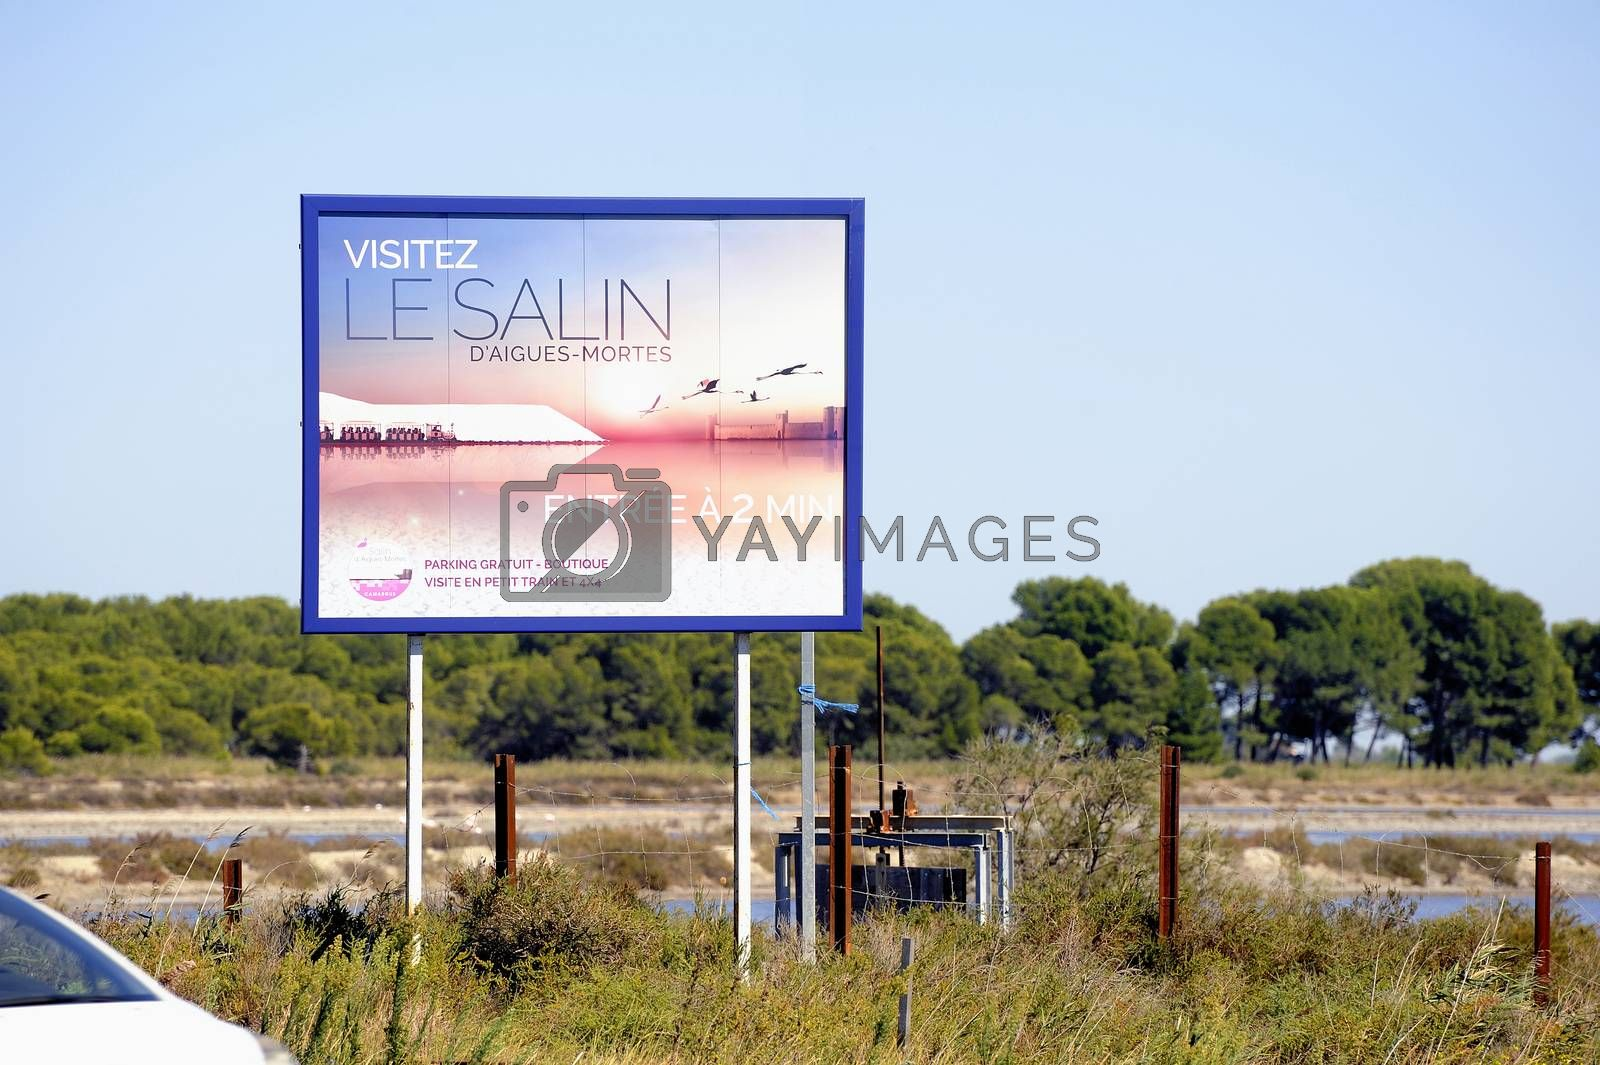 billboard saline Aigues-Mortes in Camargue to announce that tourists can visit the industrial enterprise.